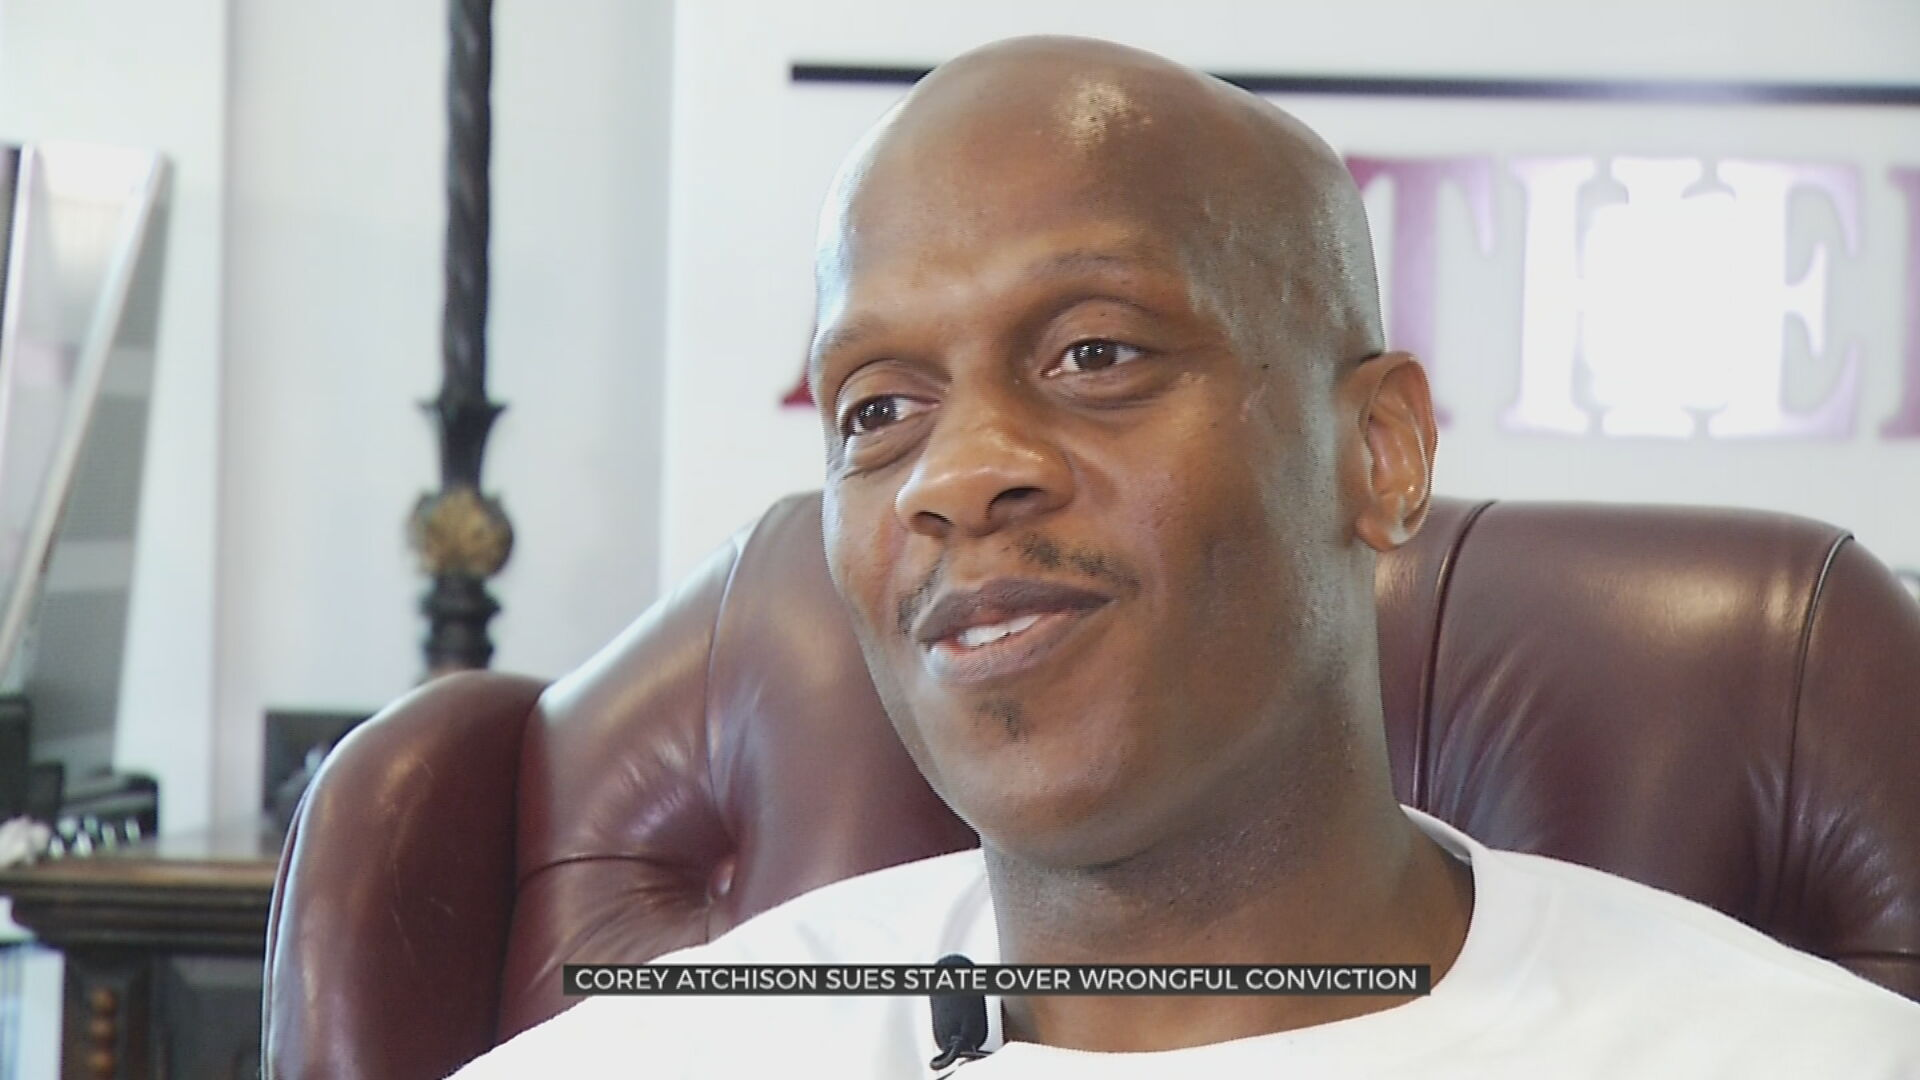 Man Who Served Nearly 30 Years Sues State Over Wrongful Conviction